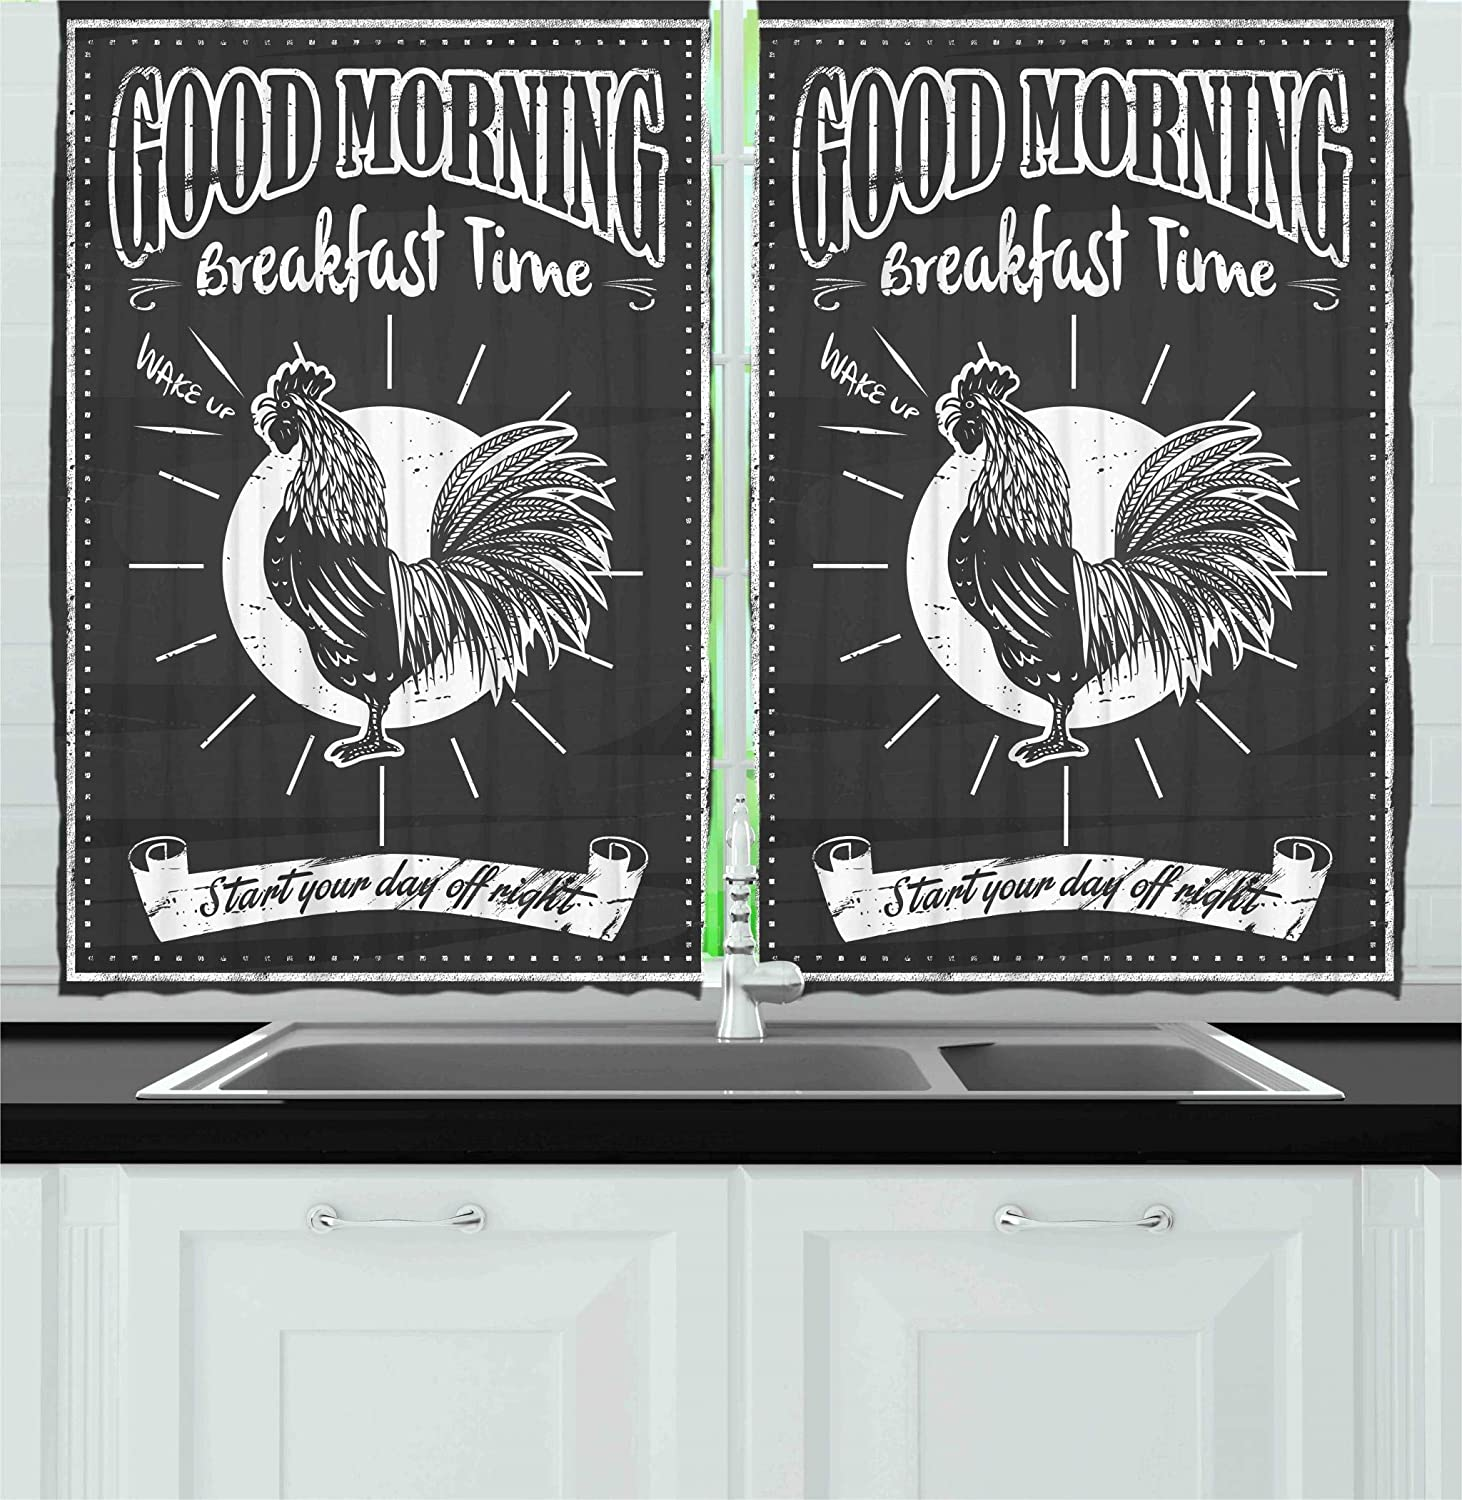 Ambesonne Kitchen Decor Collection, Chalkboard Kitchenware Menu Art Morning Rooster Retro Vintage Style Cafe or Home Design, Window Treatments for Kitchen Curtains 2 Panels, 55X39 Inches, Black White